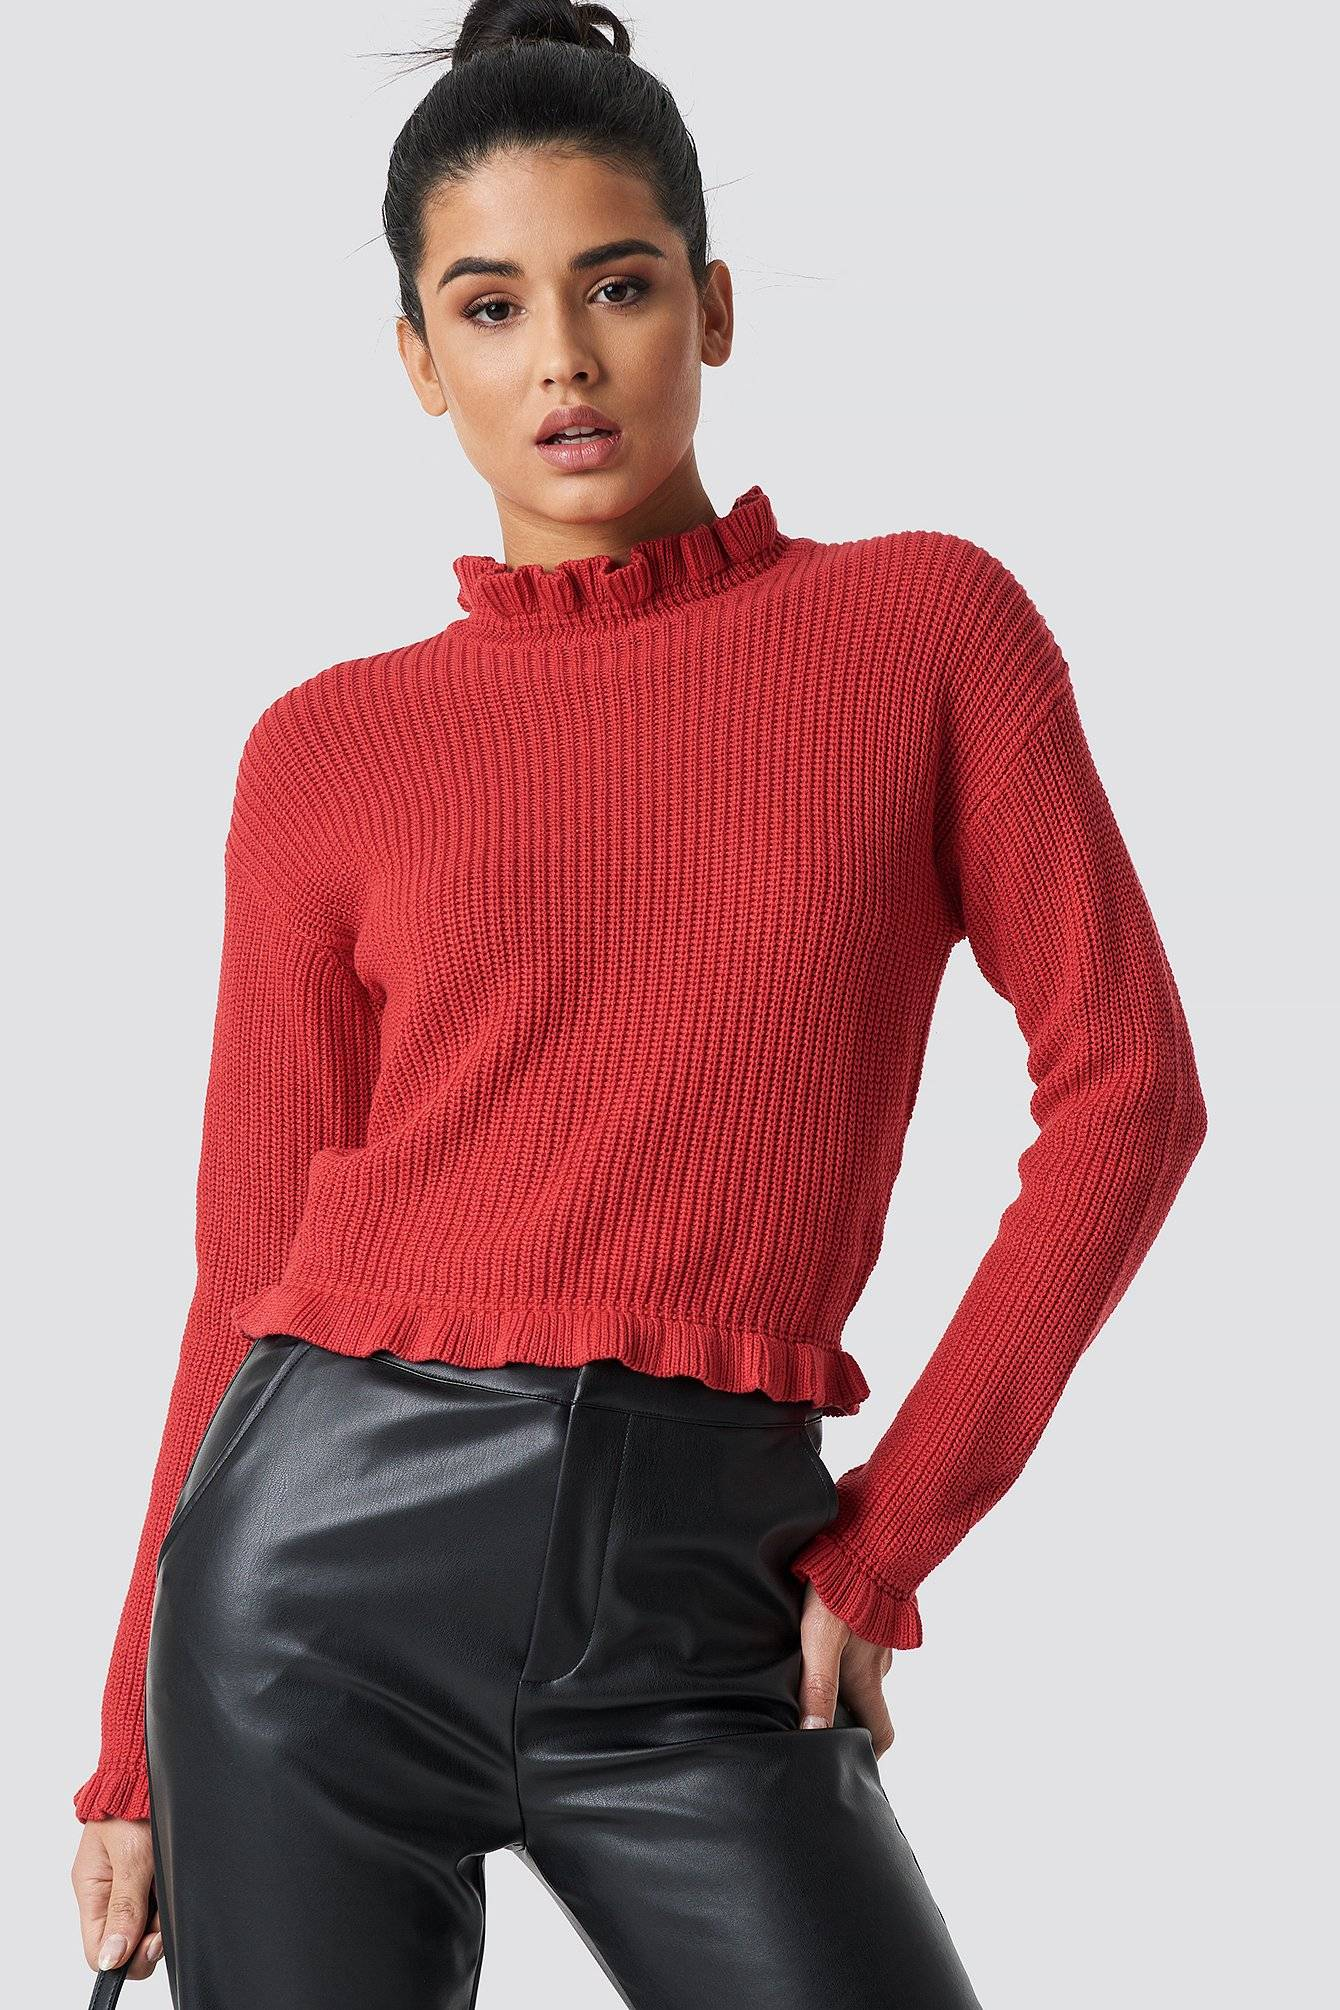 Rut&Circle Emelie Frill Knit - Red